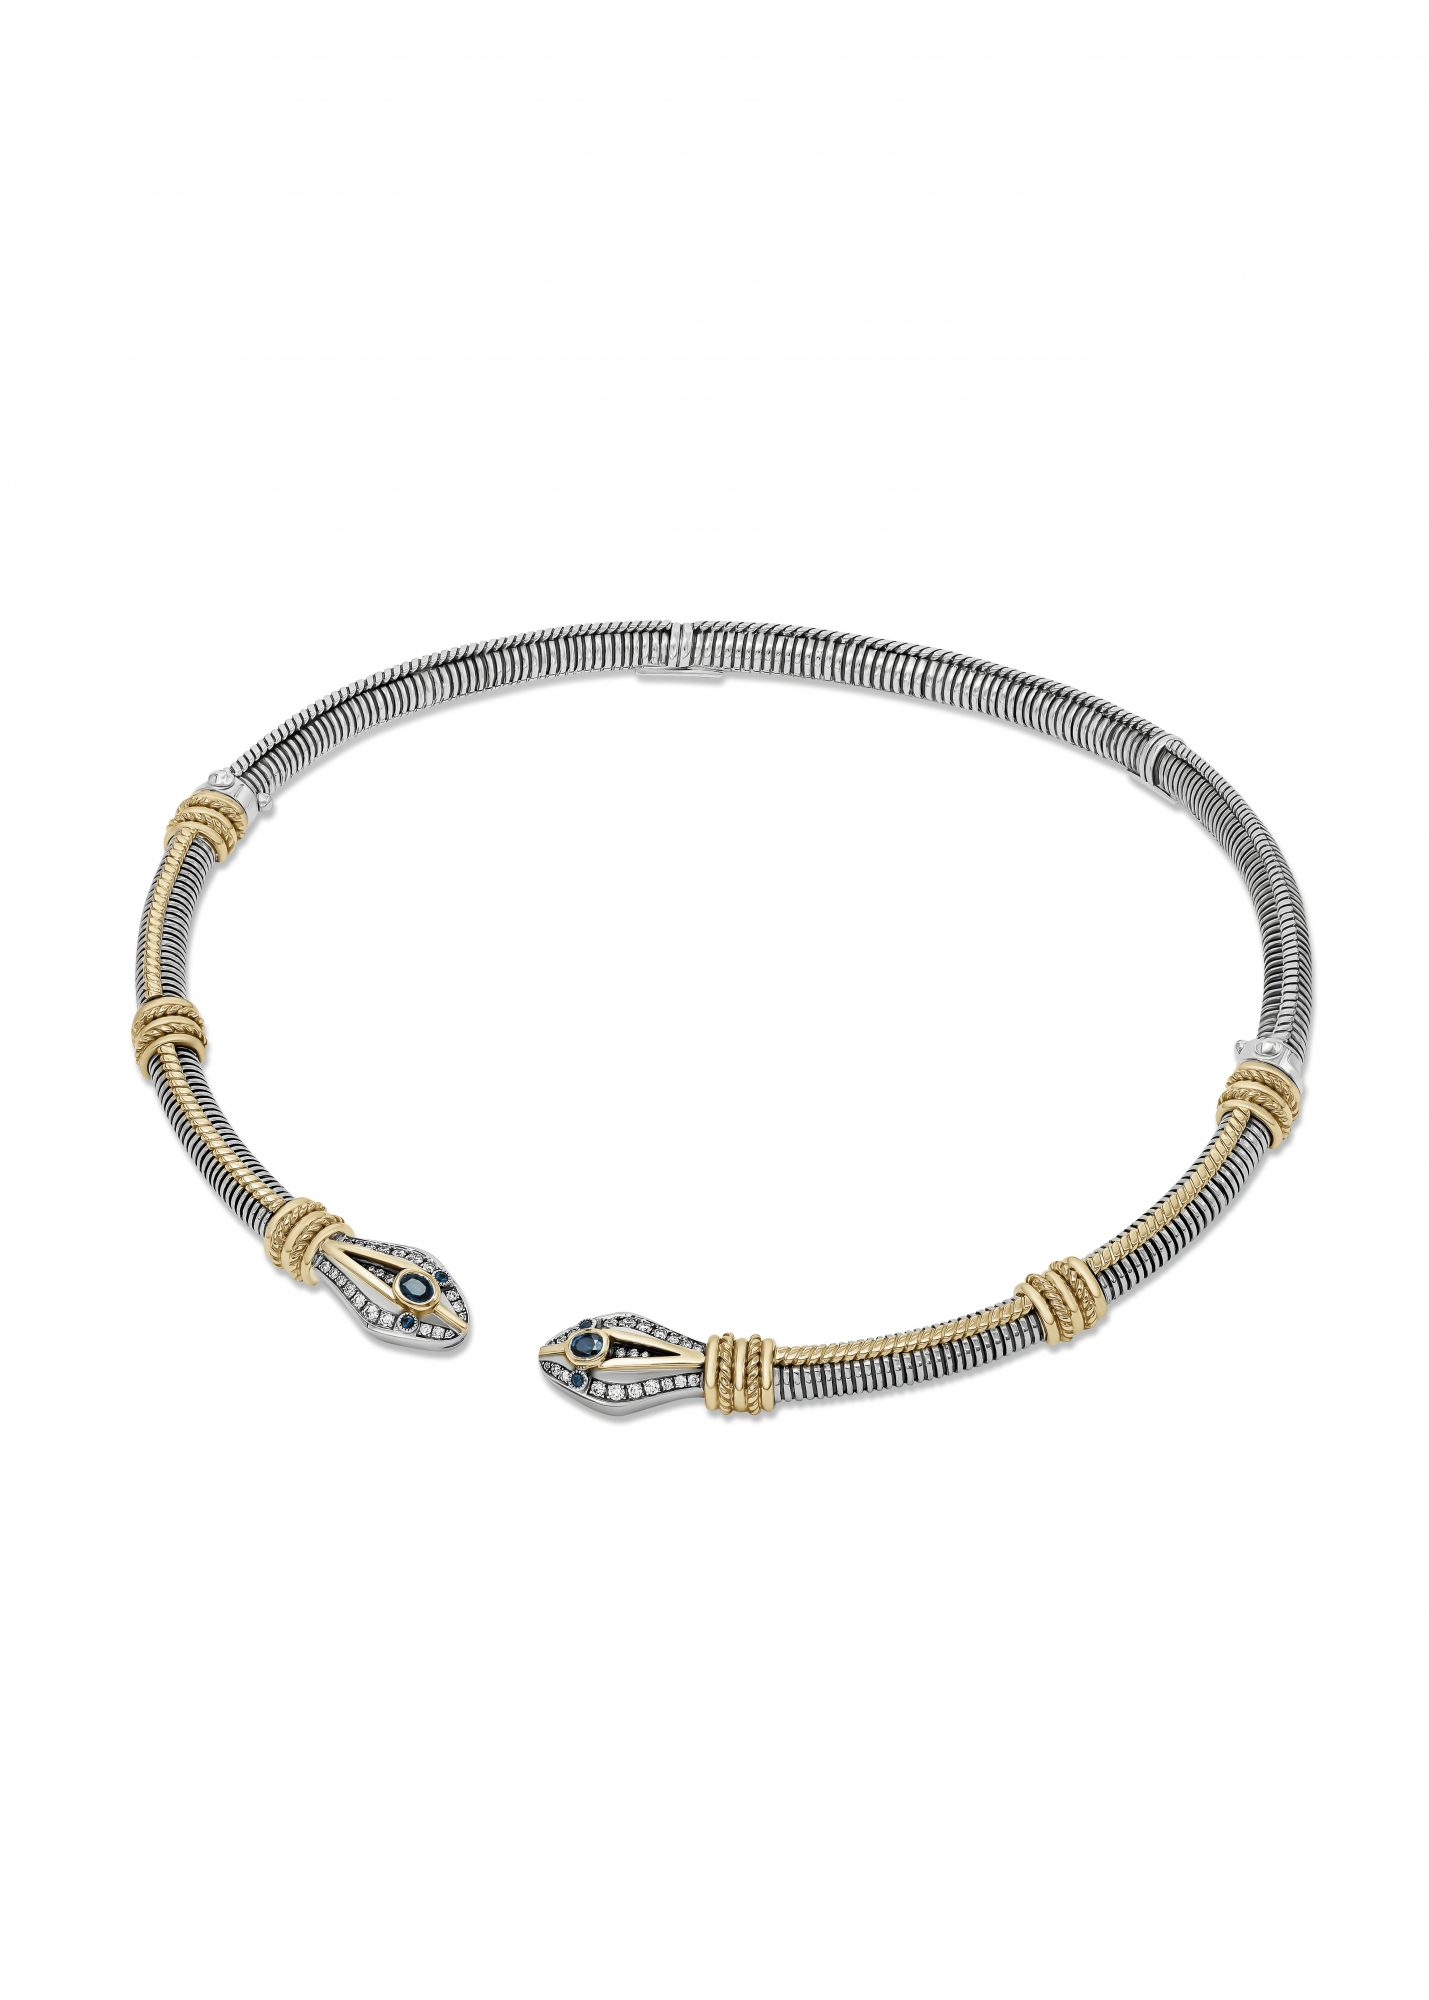 Azza Fahmy Jewellery Launches Egyptomania Capsule Collection in time for GFF